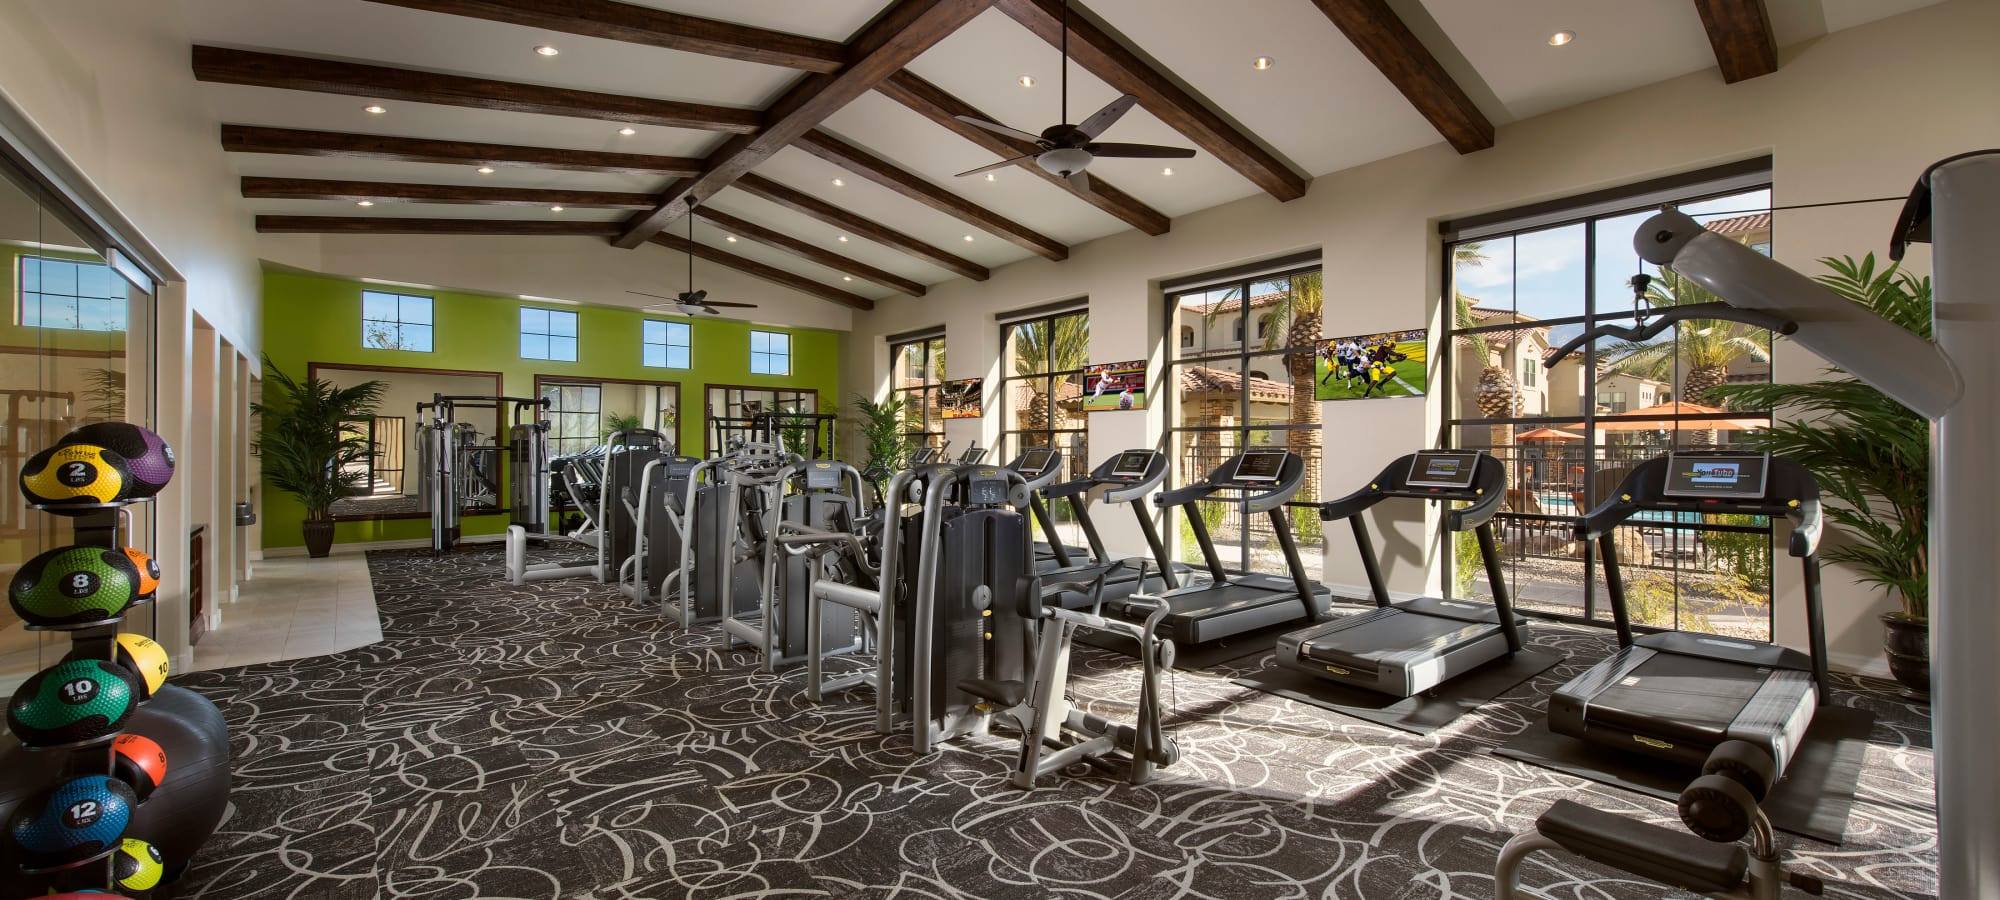 Luxury fitness center at San Valencia in Chandler, Arizona